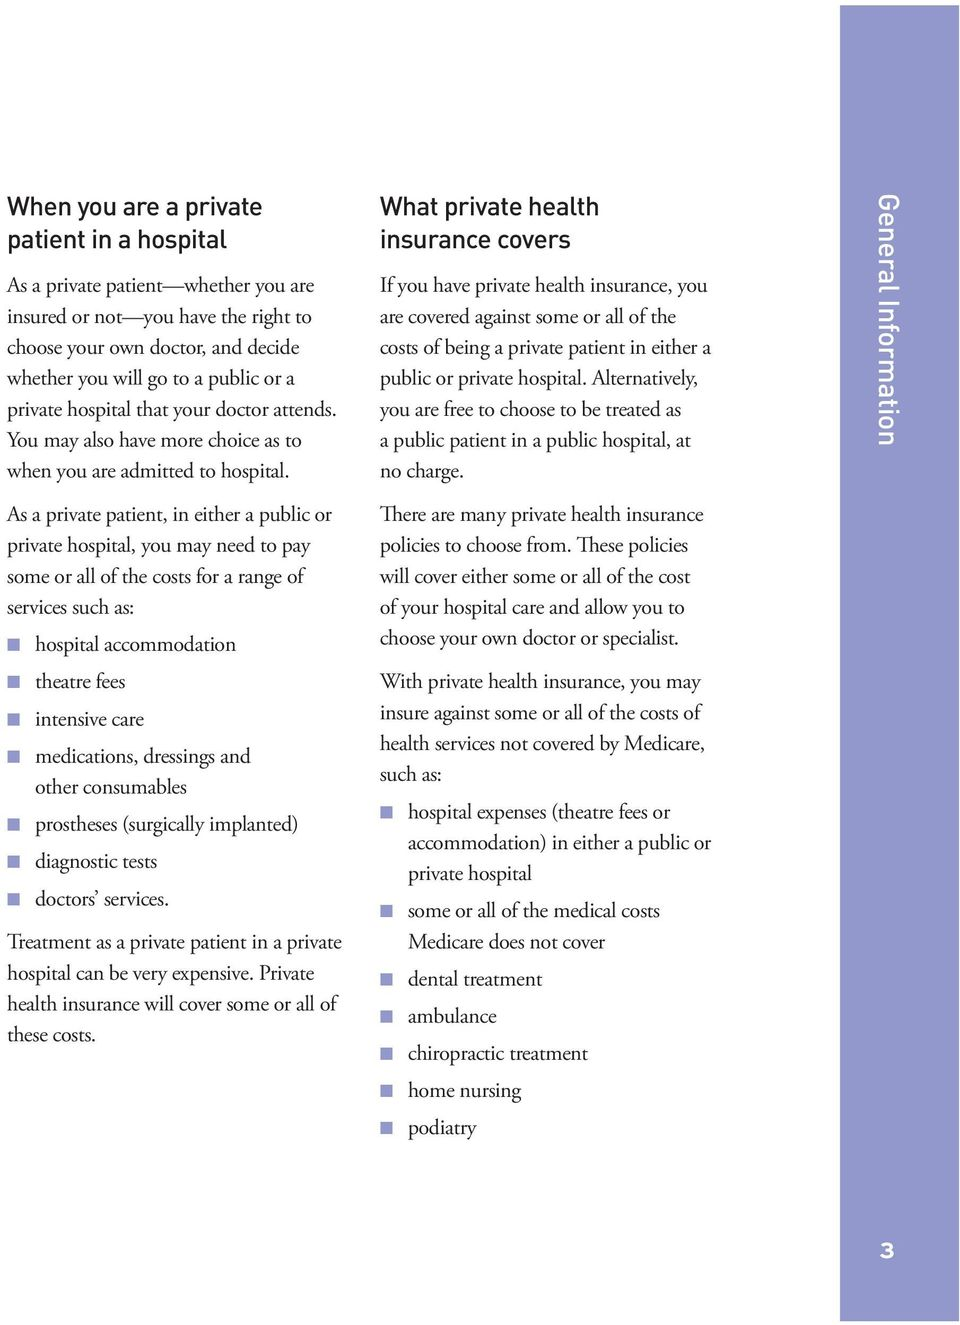 What private health insurance covers If you have private health insurance, you are covered against some or all of the costs of being a private patient in either a public or private hospital.